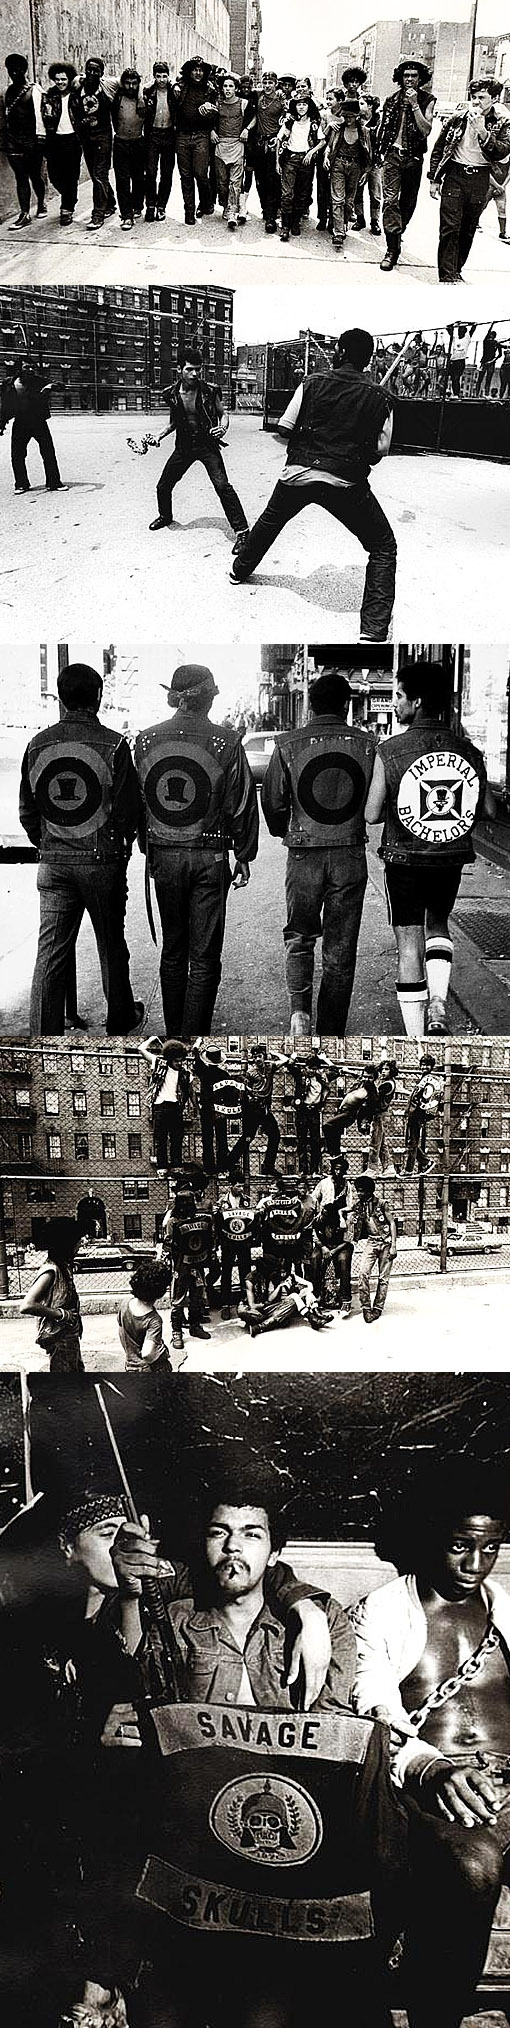 Savage Skulls Bronx Street Gangs http://pickadolla.wordpress.com/2011/10/05/the-savage-skulls-by-laurent-corbel/